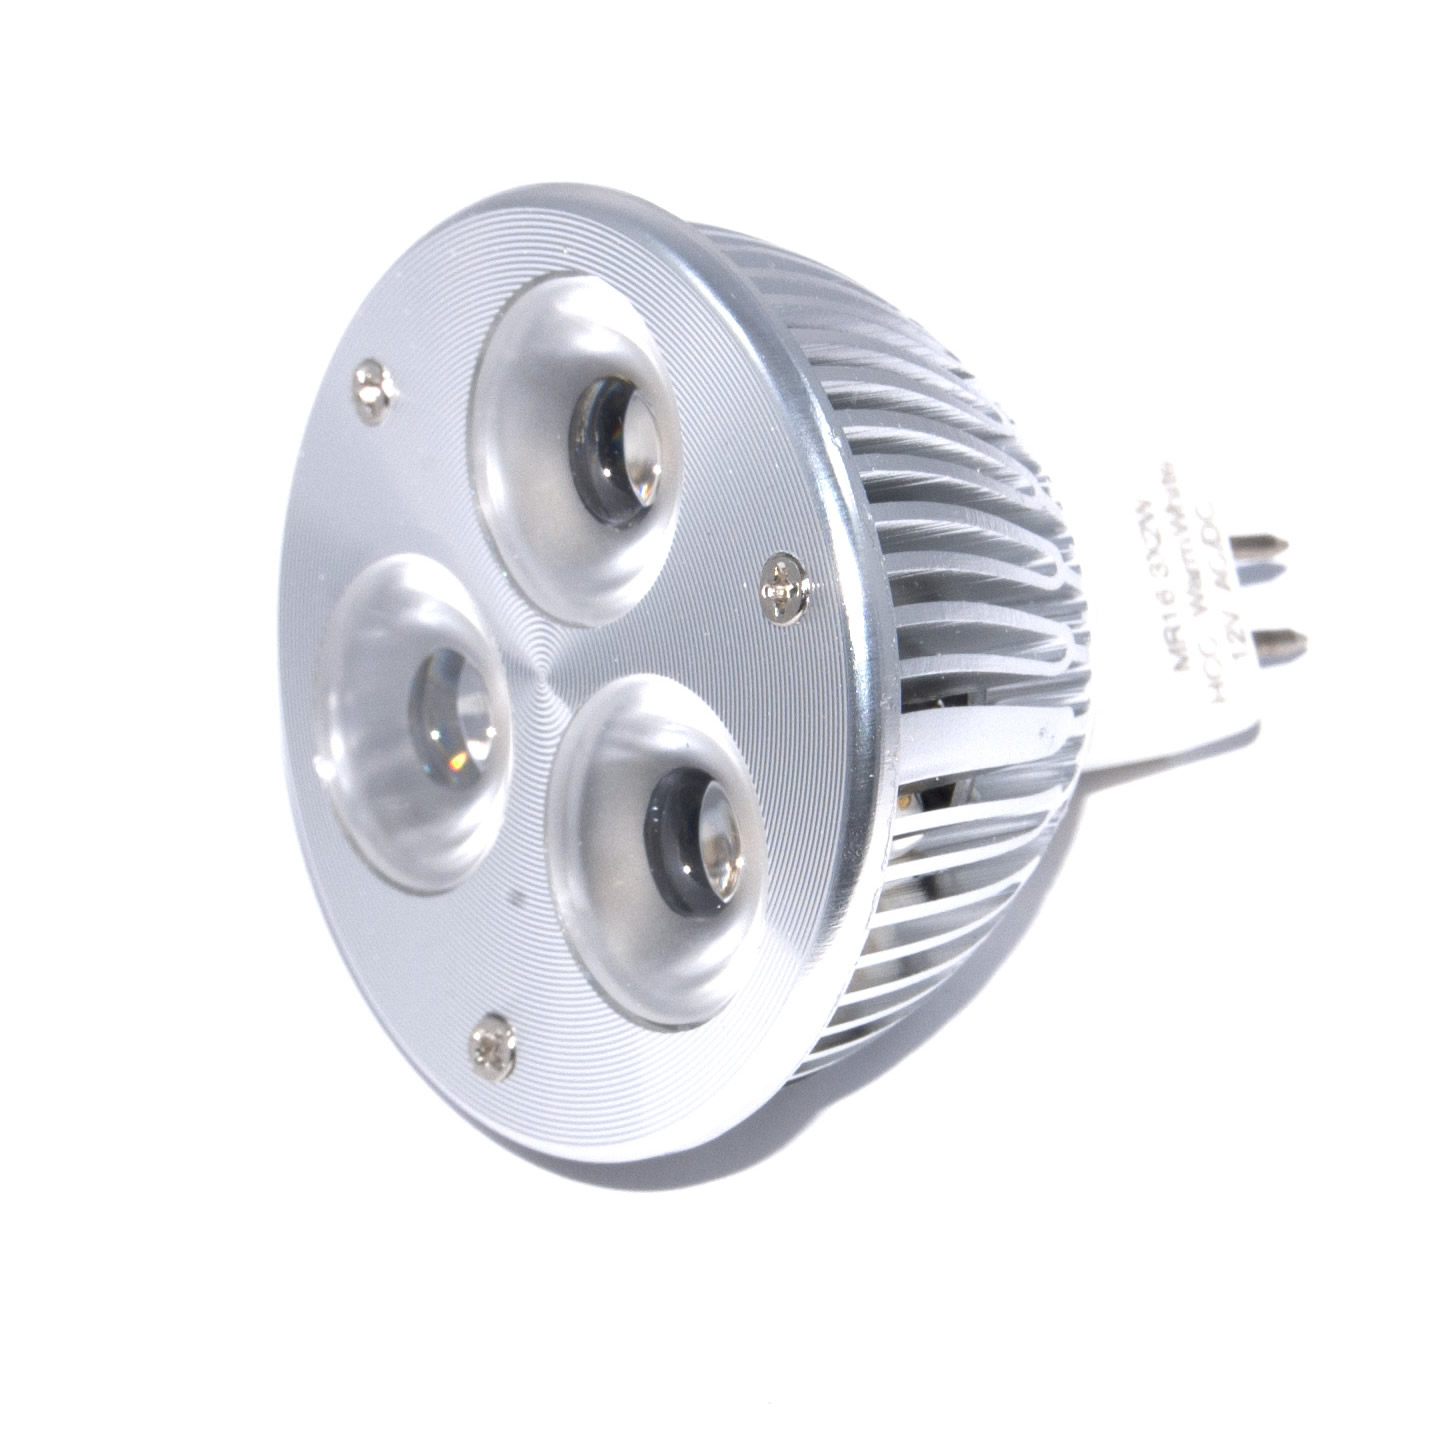 Mr16 powerled gu53 3x2w power led spot 6 watt warm wit powerled mr16 powerled gu53 3x2w power led spot 6 watt warm wit parisarafo Image collections